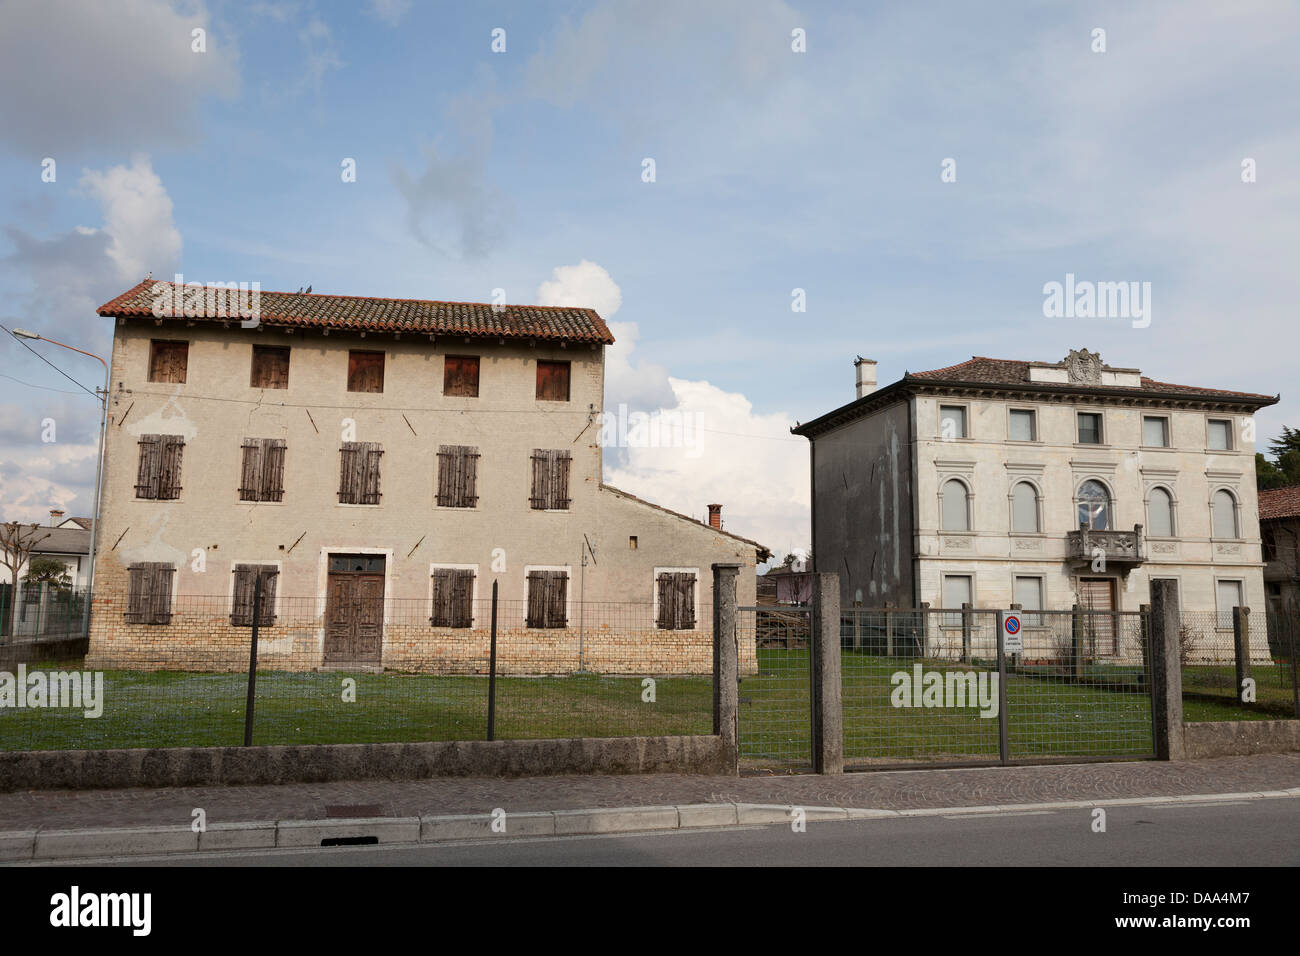 Manor houses, Pocenia,Friuli,Italy Stock Photo